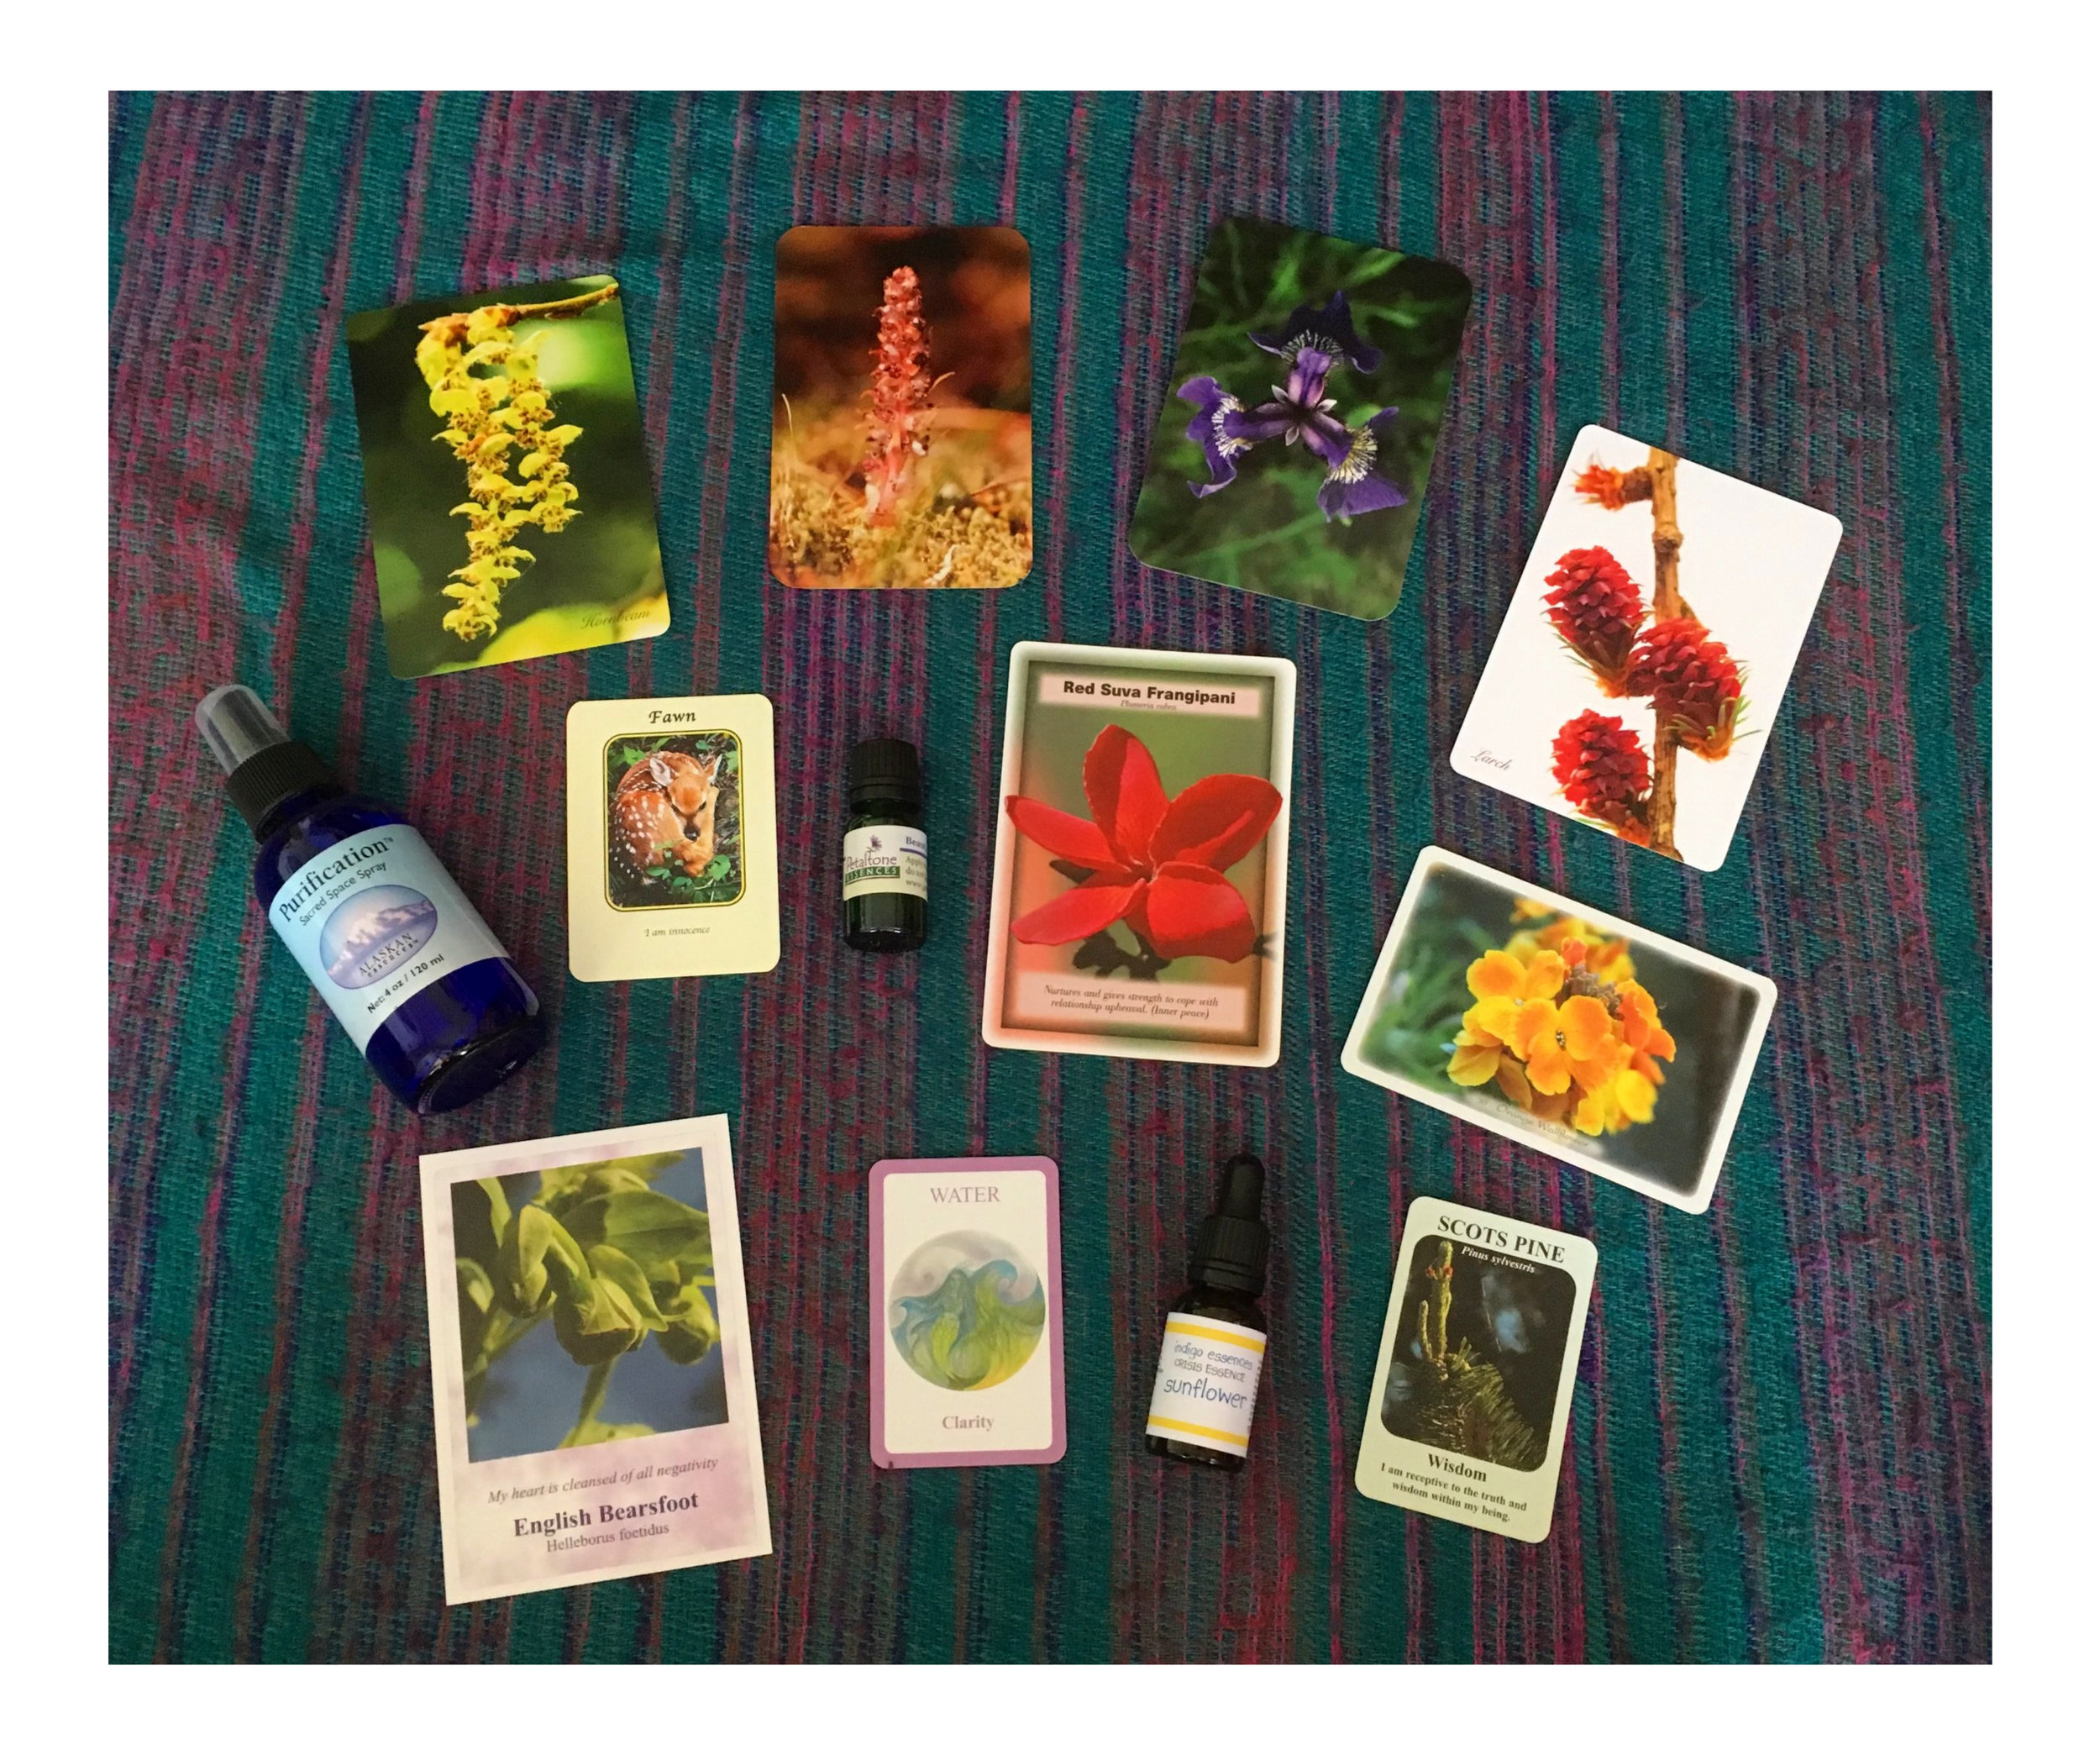 A selection of cards from the numerous Nature-inspired decks we may work with during Nature Readings